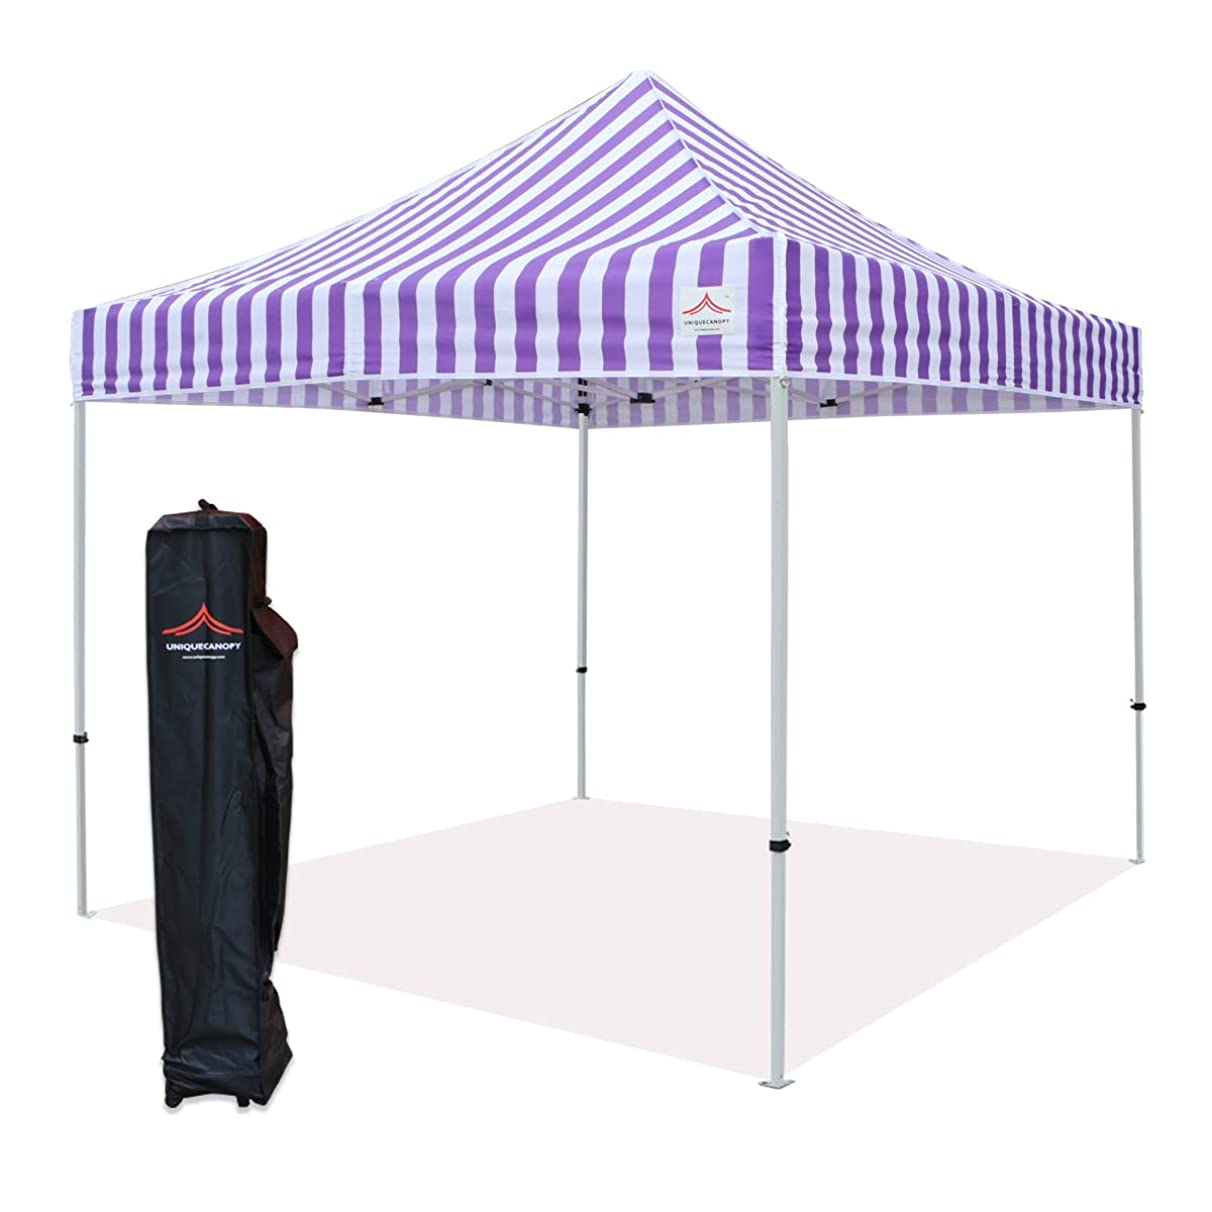 UNIQUECANOPY 10x10 Ez Pop up Canopy Tents for Parties Outdoor Portable Instant Folded Commercial Popup Shelter, with Wheeled Carrying Bag Purple White Strip